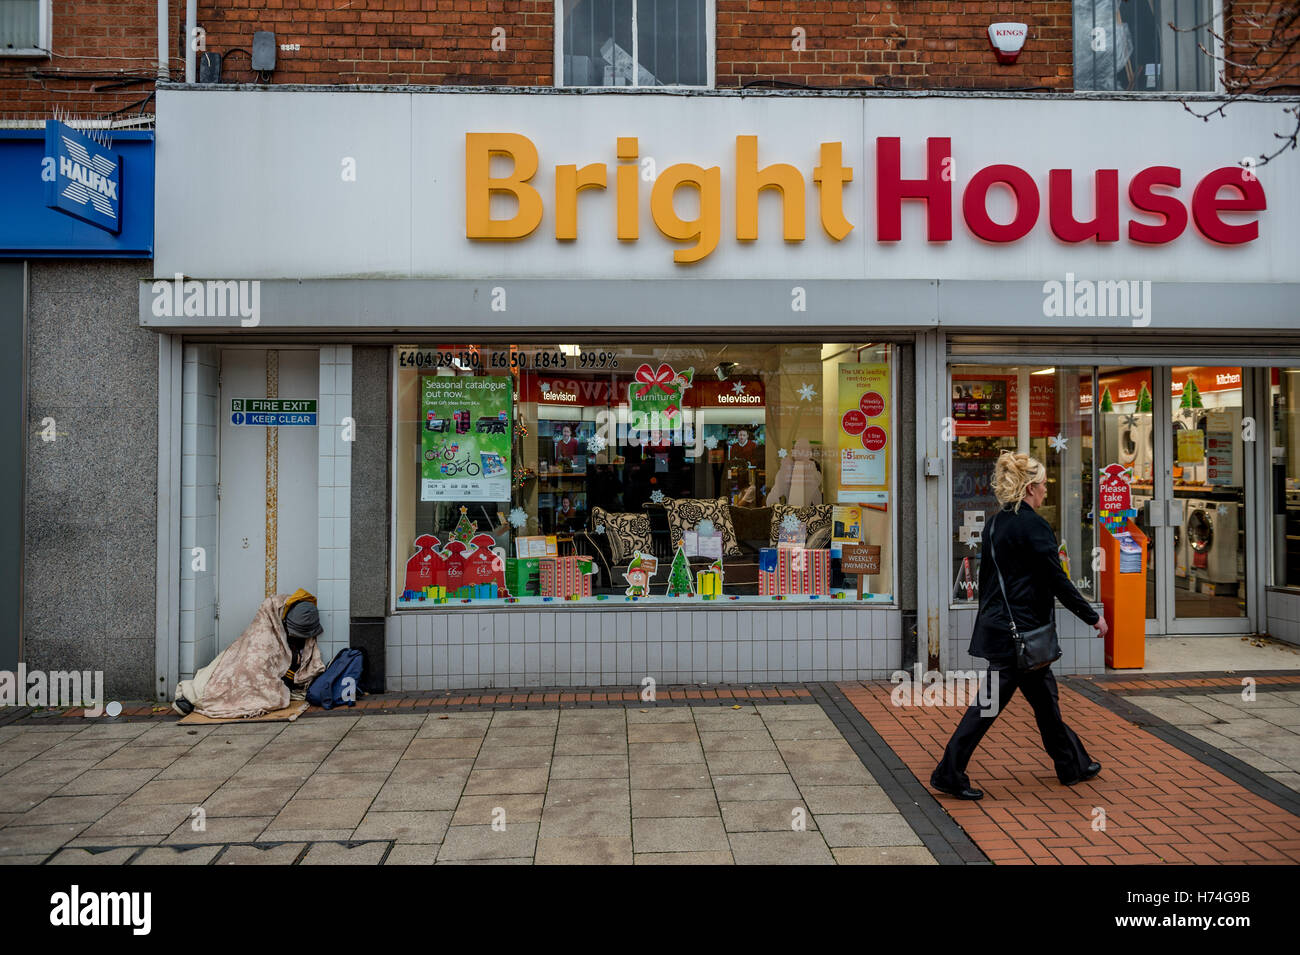 A rough sleeper outside a Bright House shop in Scunthorpe - Stock Image